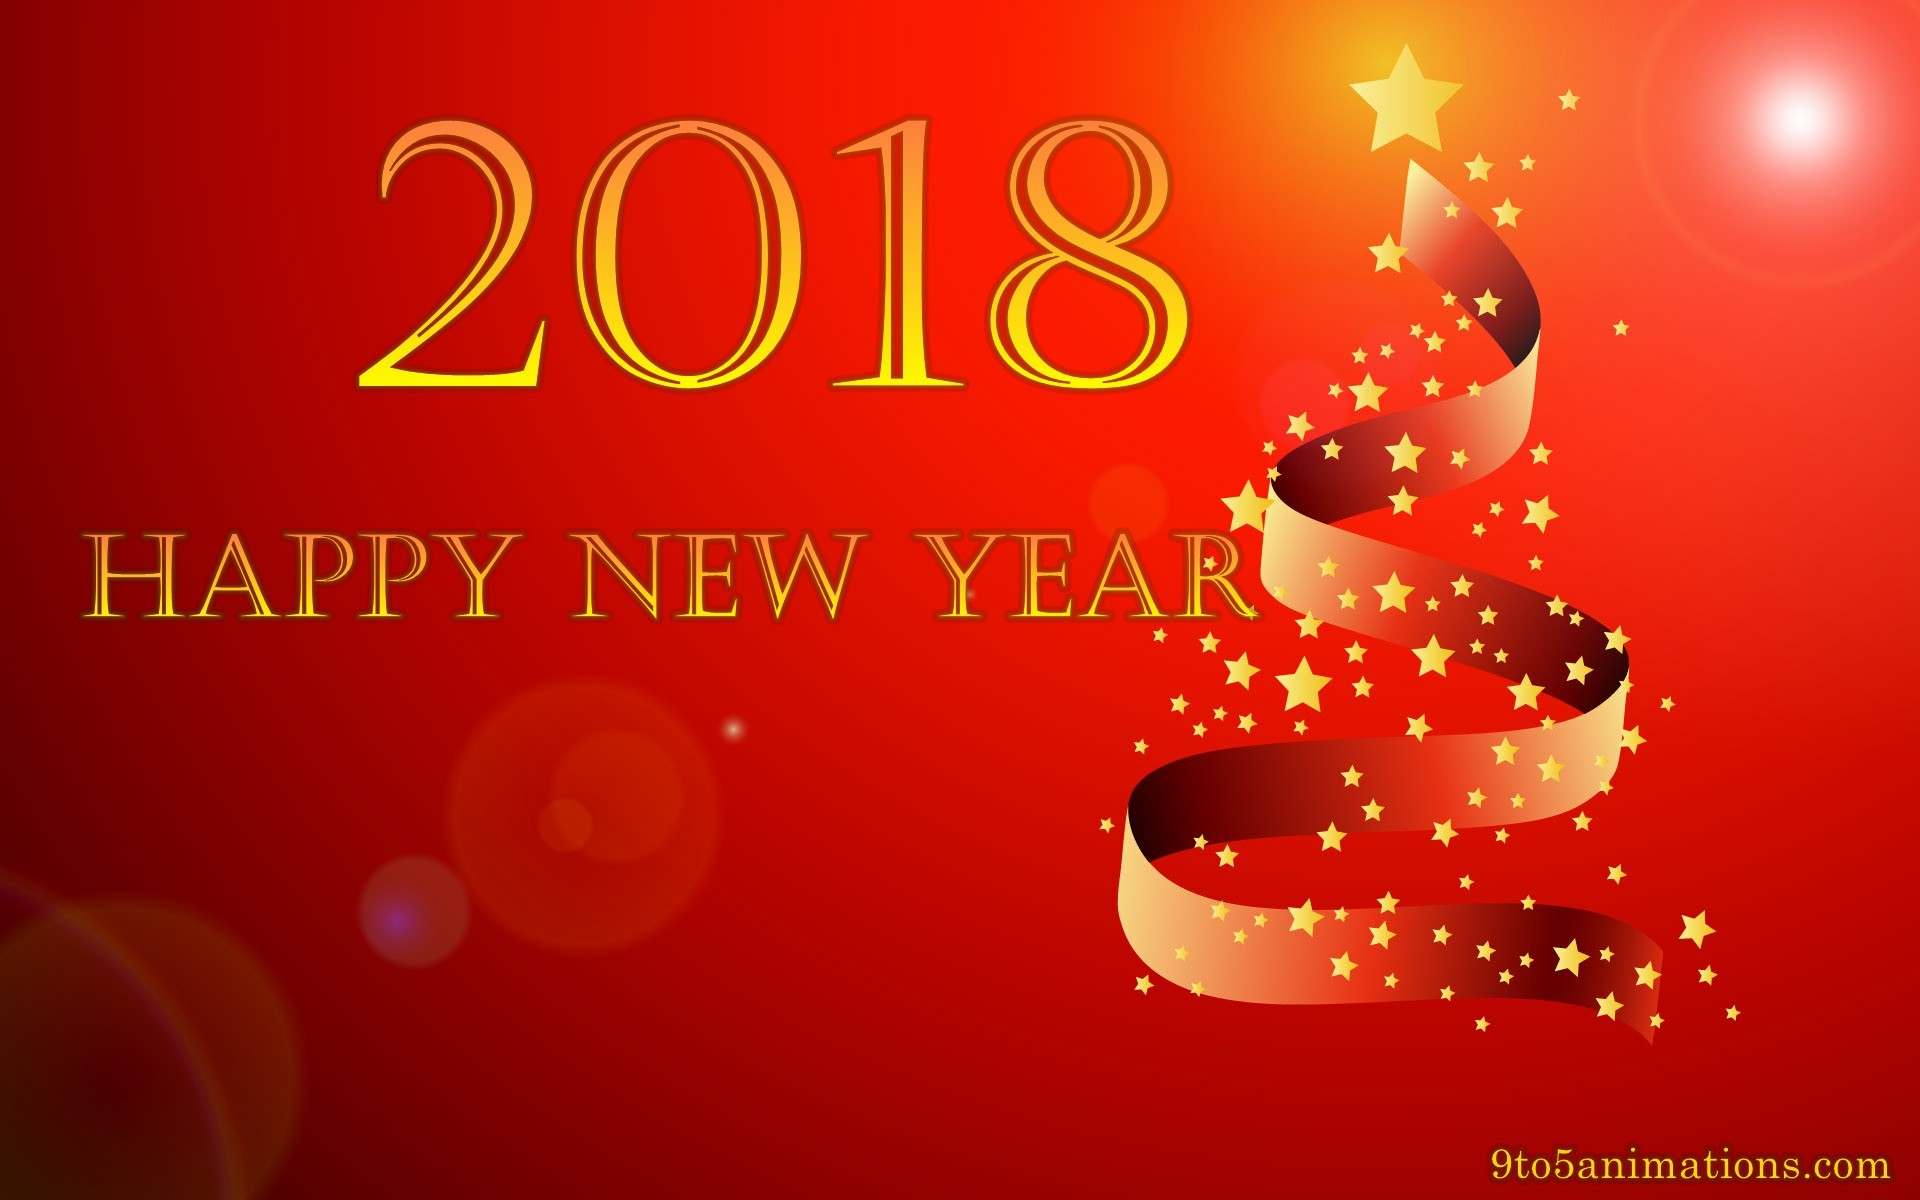 Computer Wallpaper New Year 2018 (68+ images)